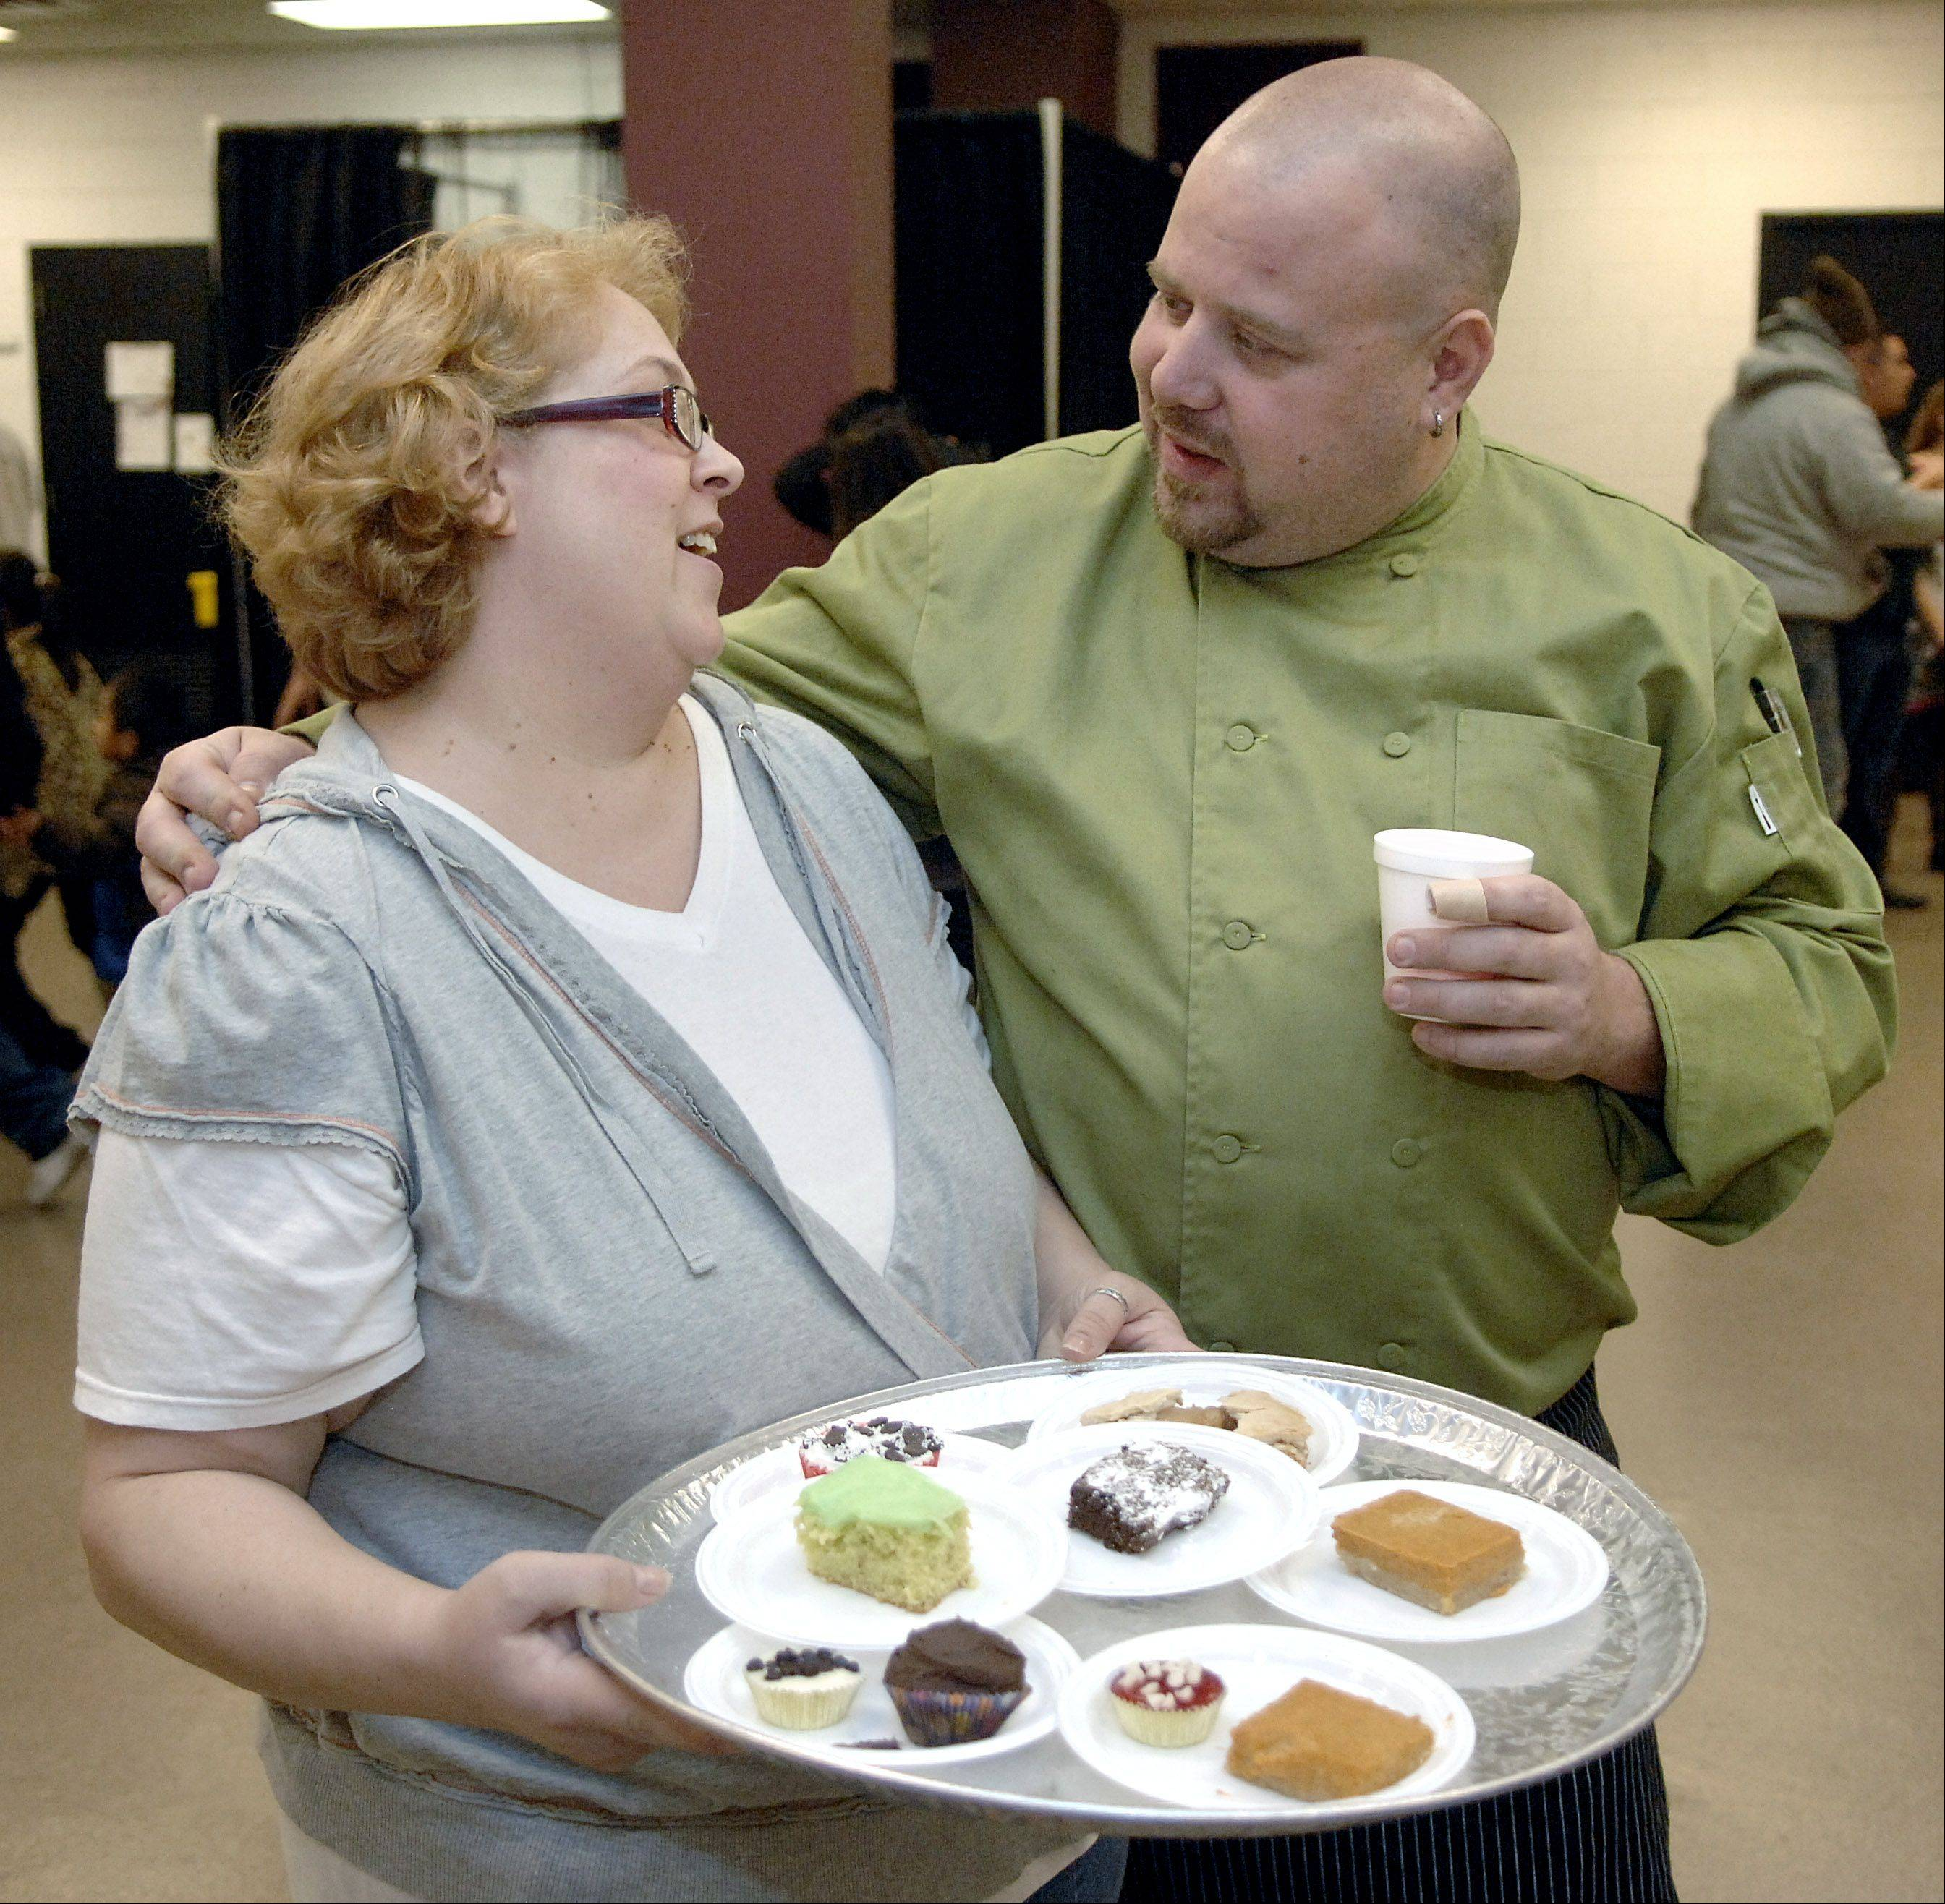 Volunteer Angela Kibbe of Elgin greets Thanksgiving dinner organizer and chef Jeff Turner of �In the Neighborhood Deli� while serving desserts at the Hemmens Cultural Center late Thursday morning. This year the Elgin dinner has moved to First United Methodist Church.